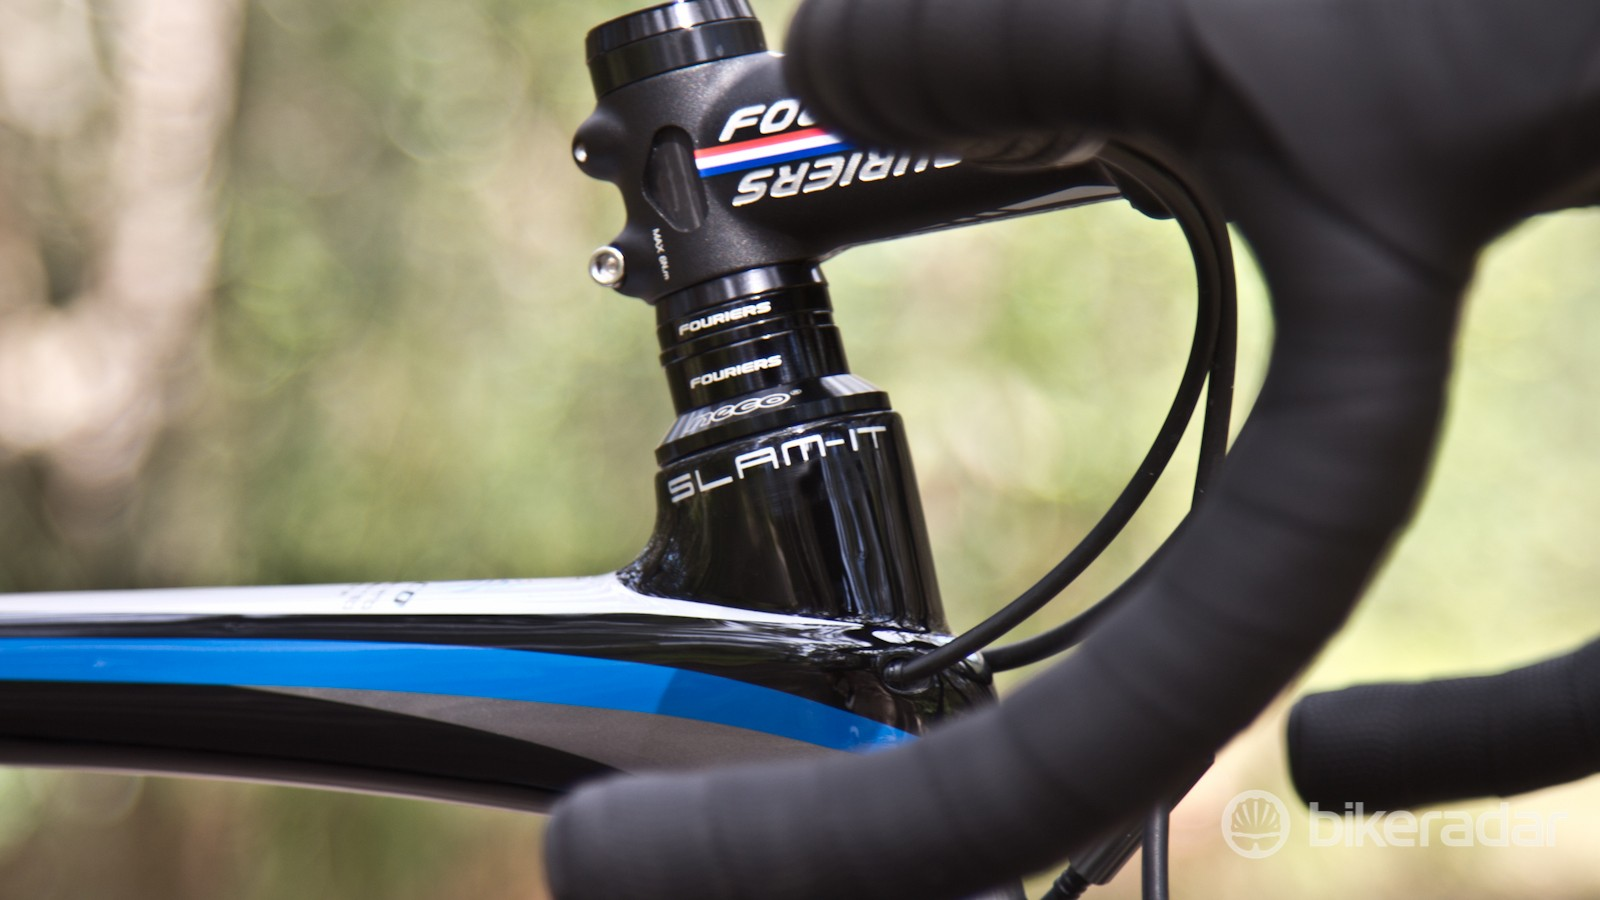 With the head tube protruding 4cm above the top tube, an ultra-aggressive position may be hard to come by